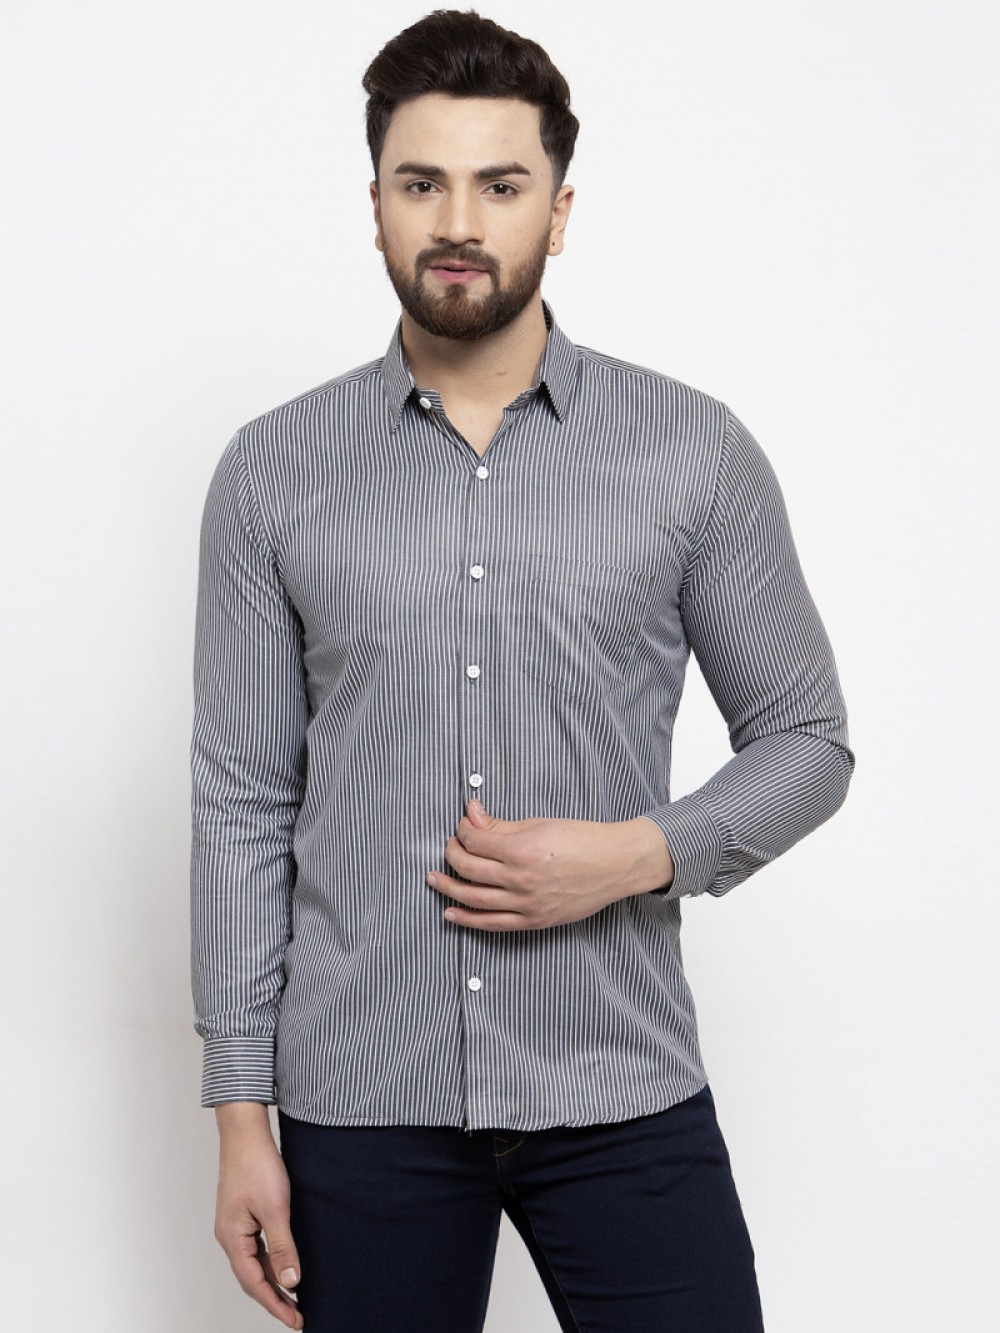 Small Lines Verticallly Grey Color Wear Shirt